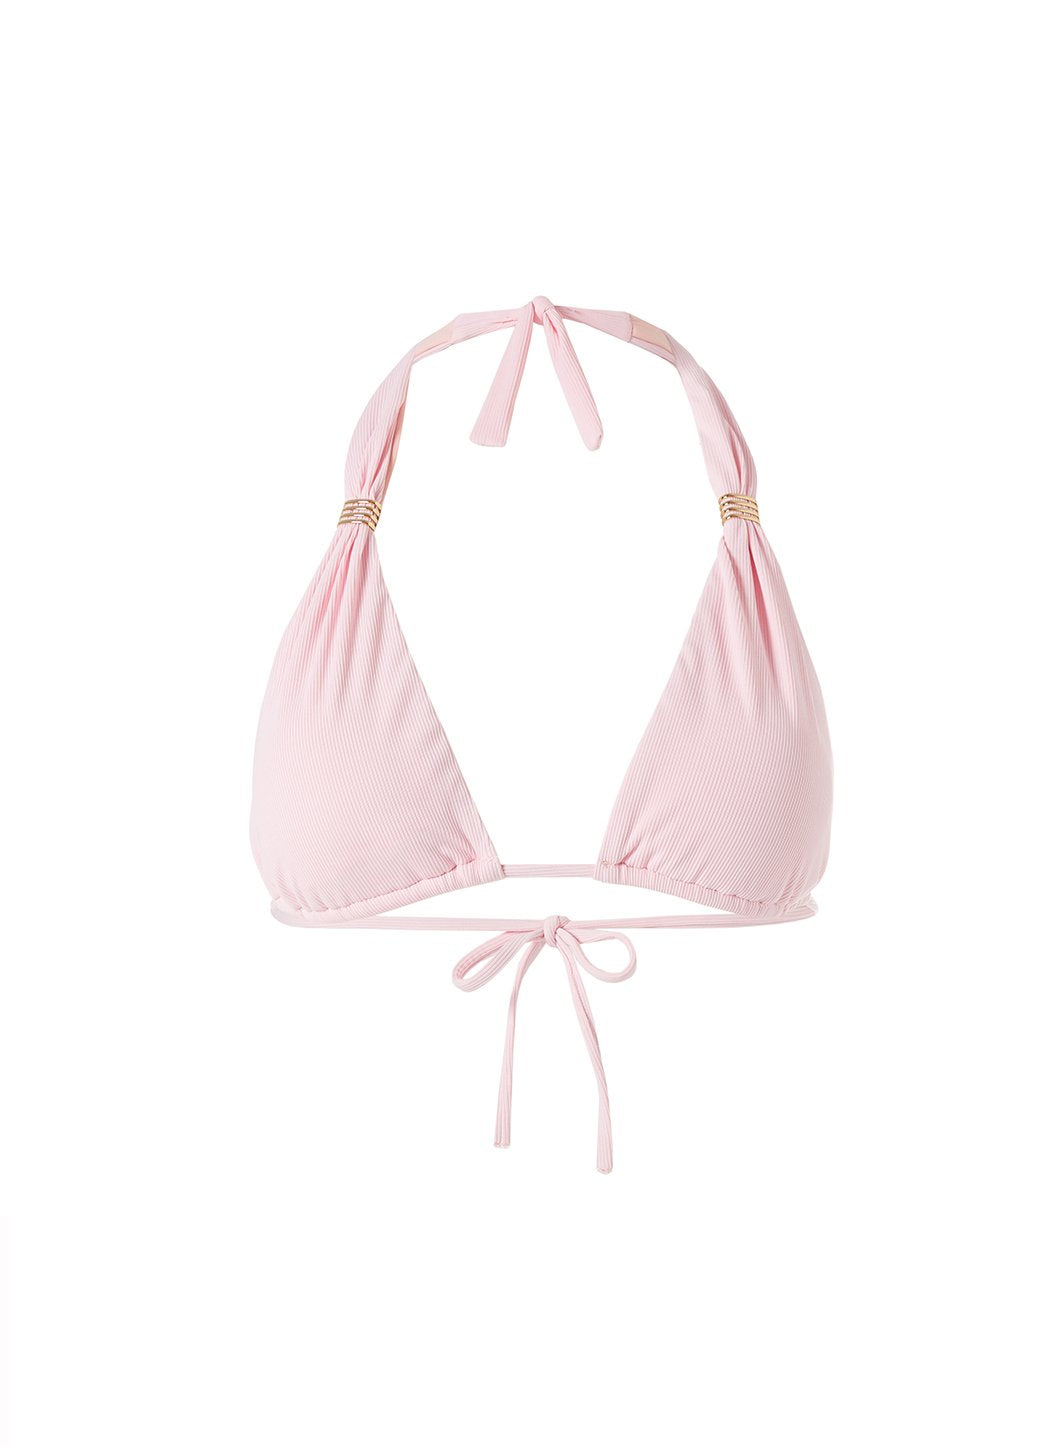 Grenada Ribbed Blush Bikini Top Cutout